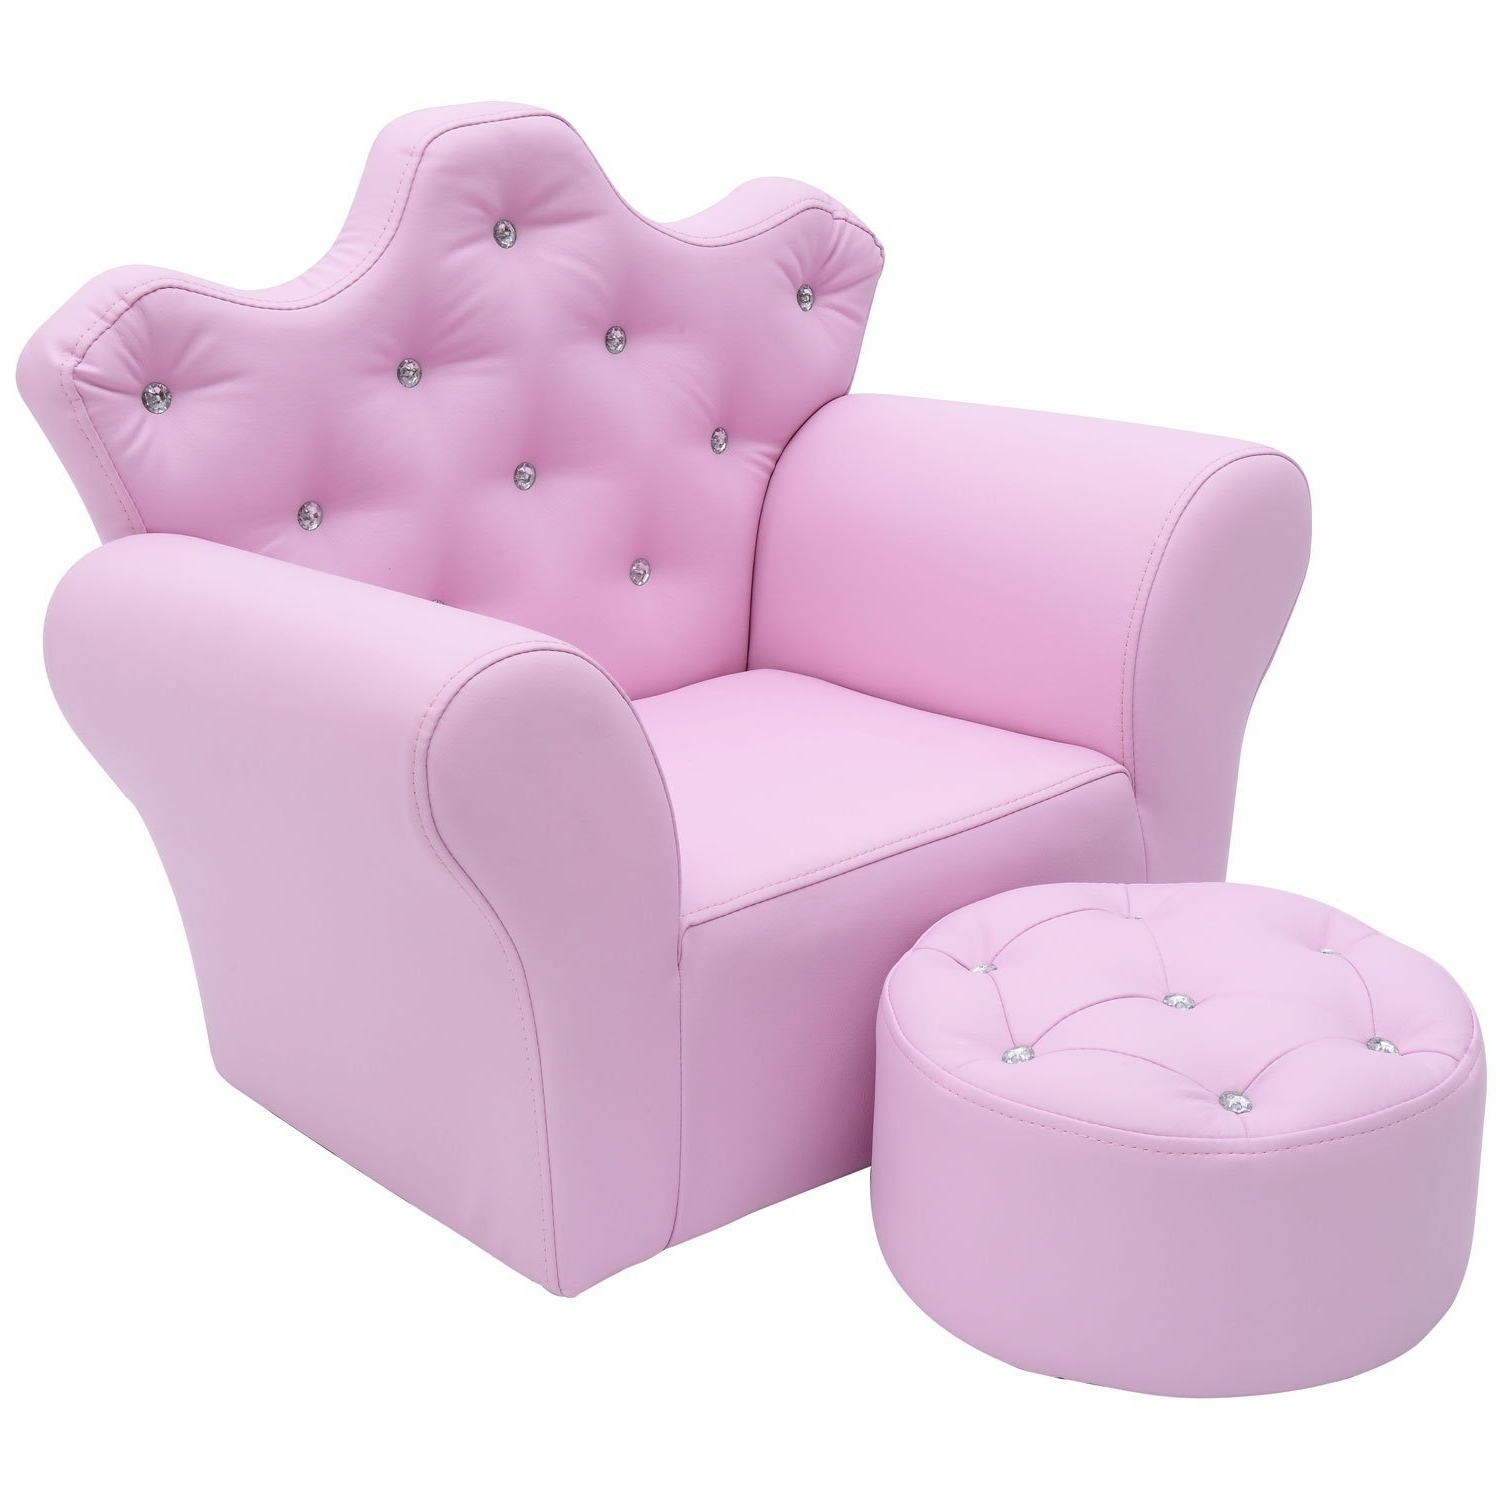 Armchair : Kids Lounge Chair Recliner For 12 Year Old Upholstered With Regard To Fashionable Personalized Kids Chairs And Sofas (View 12 of 20)